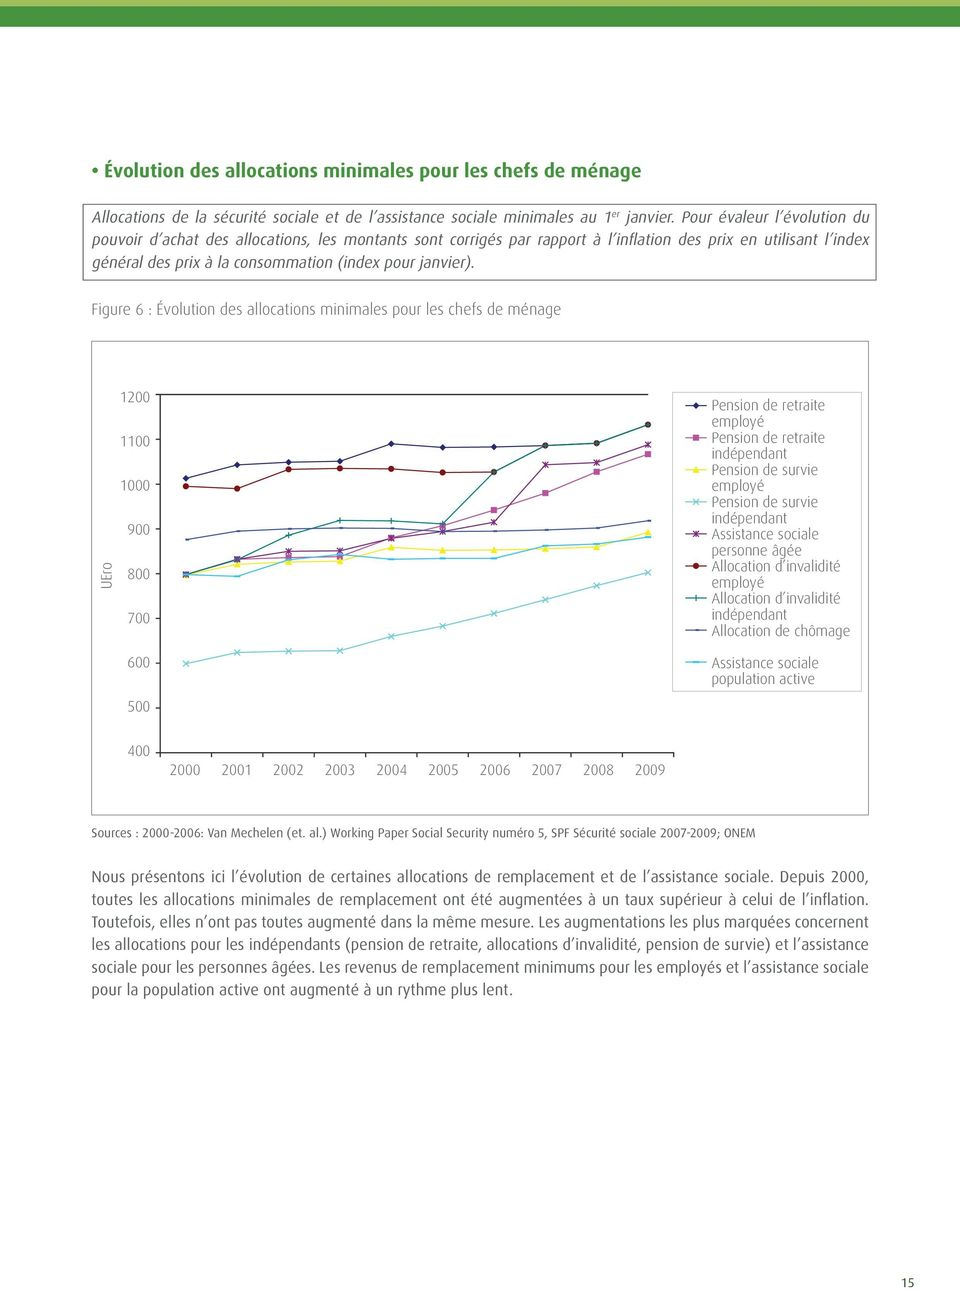 Figure 6 : Évolution des allocations minimales pour les chefs de ménage evolution of minimum allowances for heads of household 2-29, in constant prices (26) UEro 12 11 1 9 8 7 6 5 old Pension age